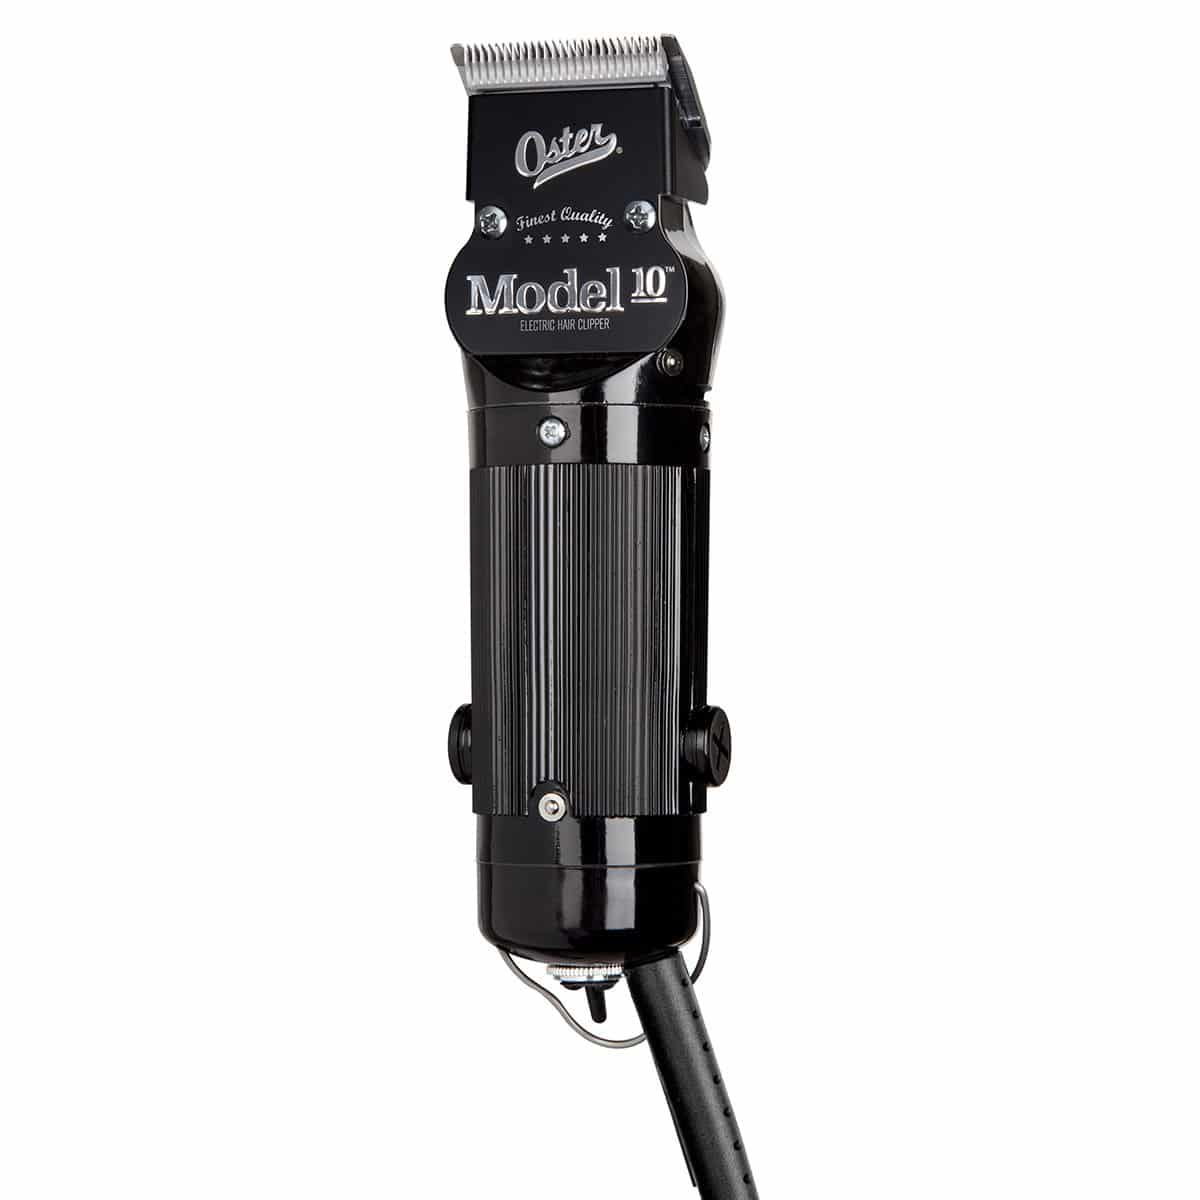 Oster Clippers Power Cord